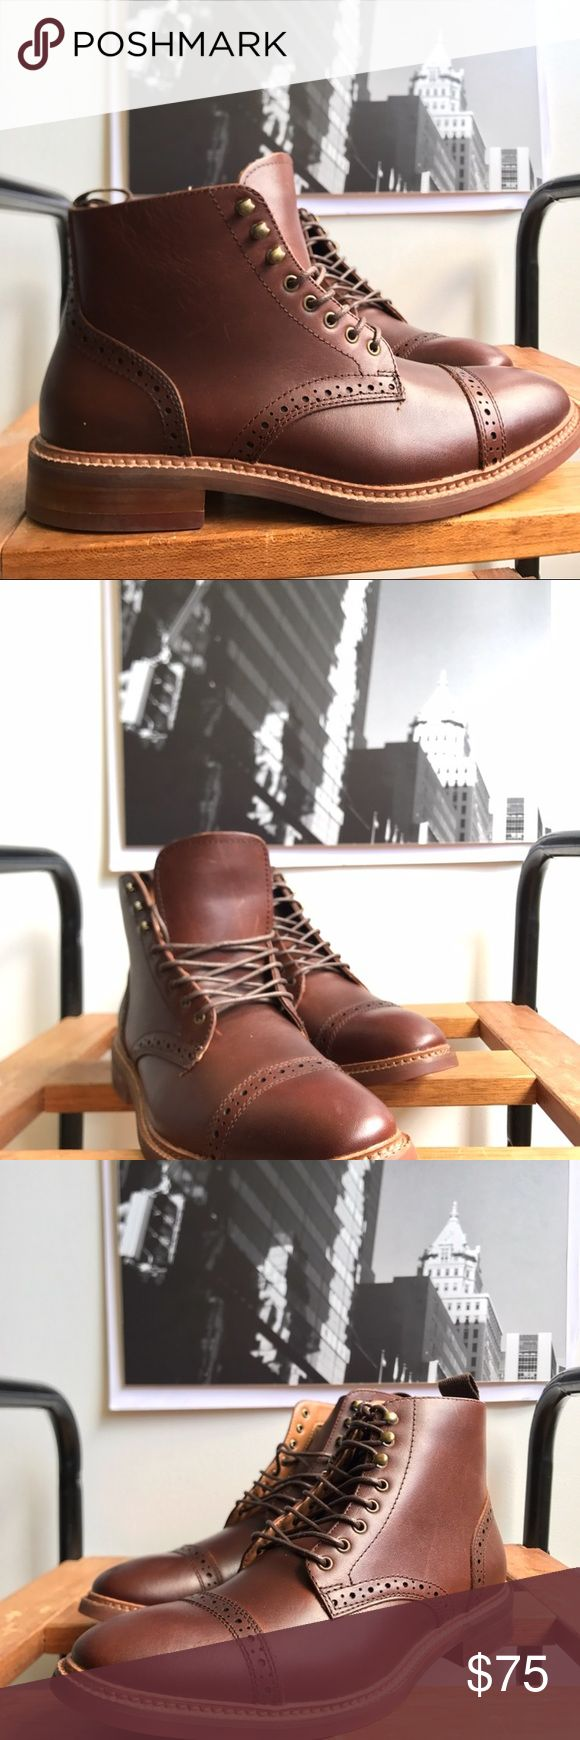 🙌🏾Brand New Aldo Boots #0195AO Brand new Aldo brown genuine leather lace up oxford style boot. Notice the detail around the toe area and sides. Pull tab on the back of boot to assist with putting on boots. NO TRADES. NO LOWBALL OFFERS, Thank you! #boot #aldo #men #mensstyle #style #streetwear #boot #size7.5 #size37.5 #oxford #fallfashion #winterfashion #winter #fall #aldoboot Aldo Shoes Boots